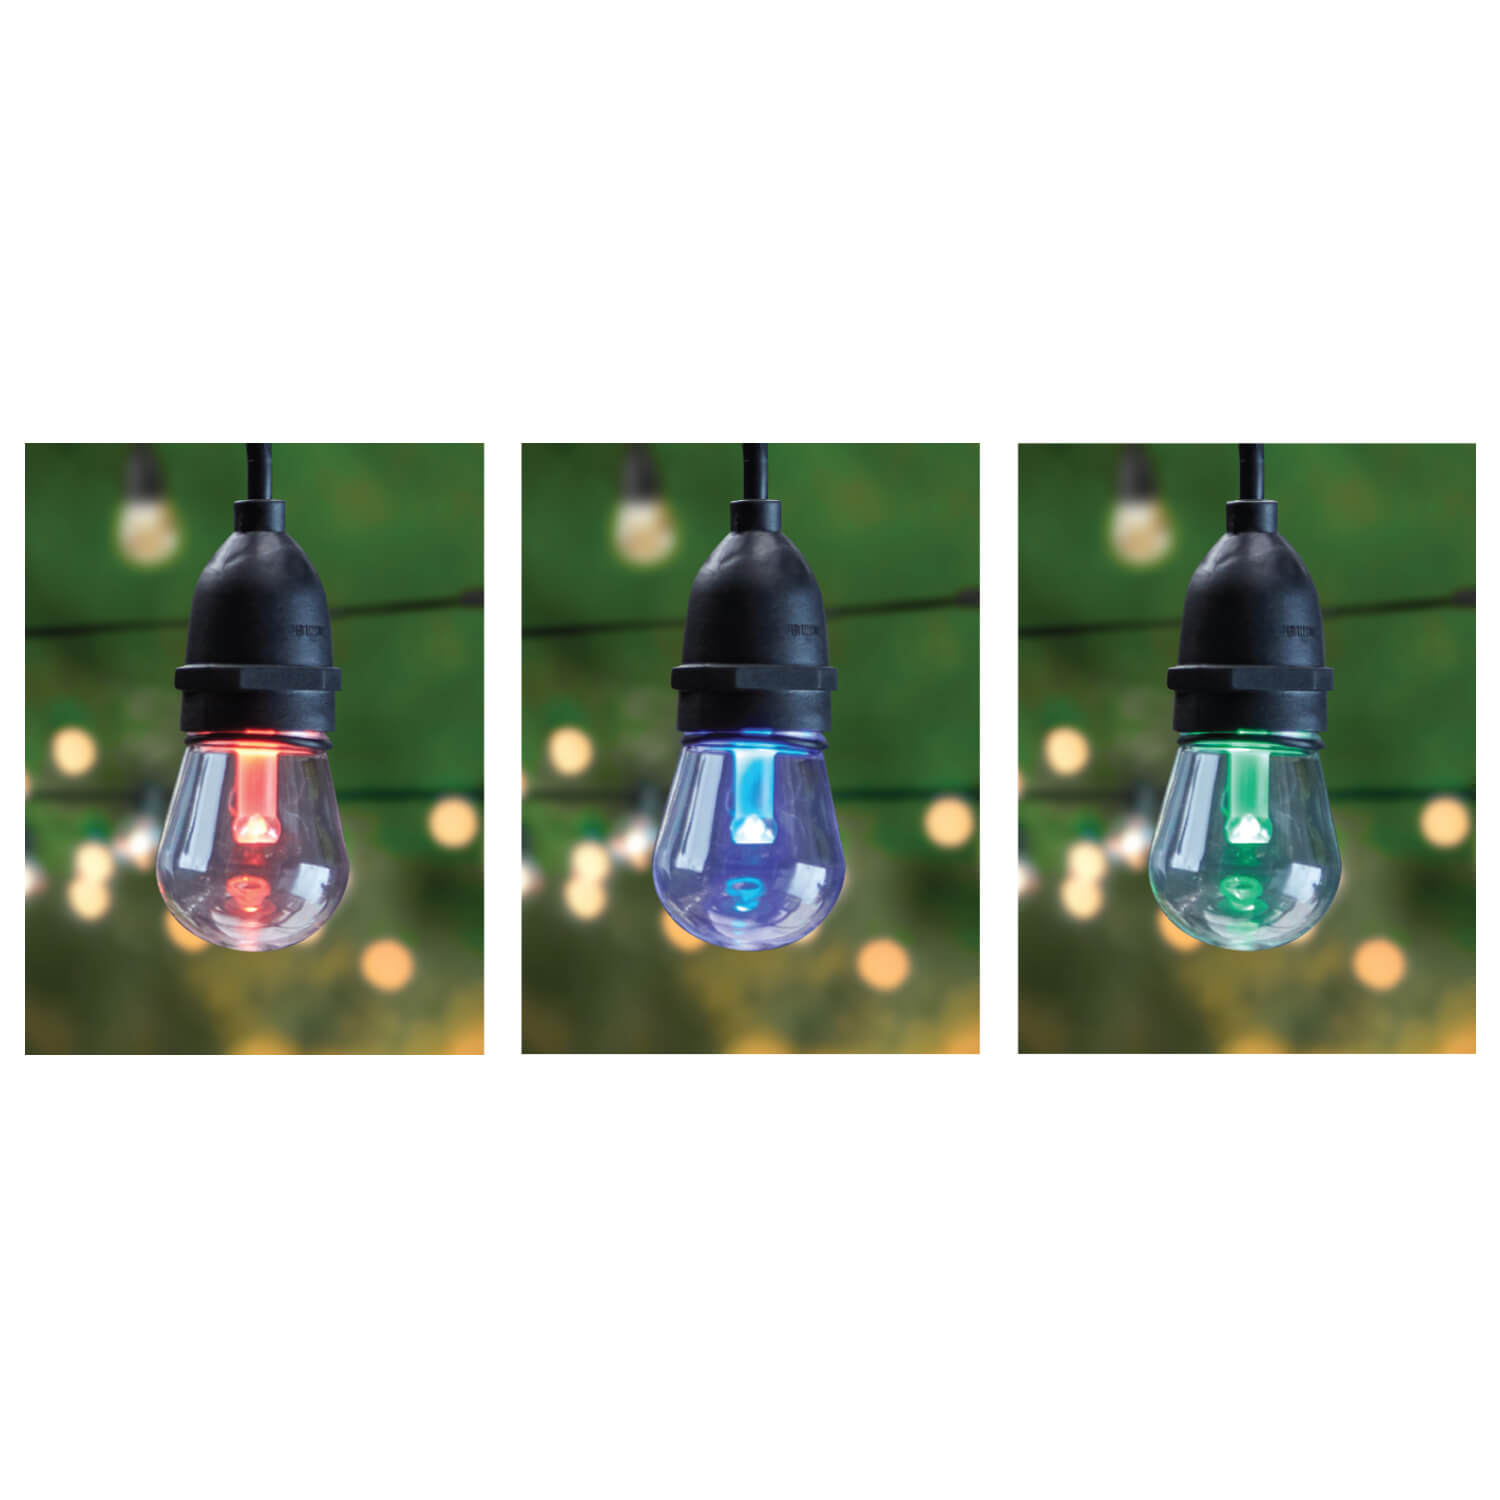 Feit Electric String Lights Dimmable : 30 Foot Color Changing LED String Lights - Feit Electric